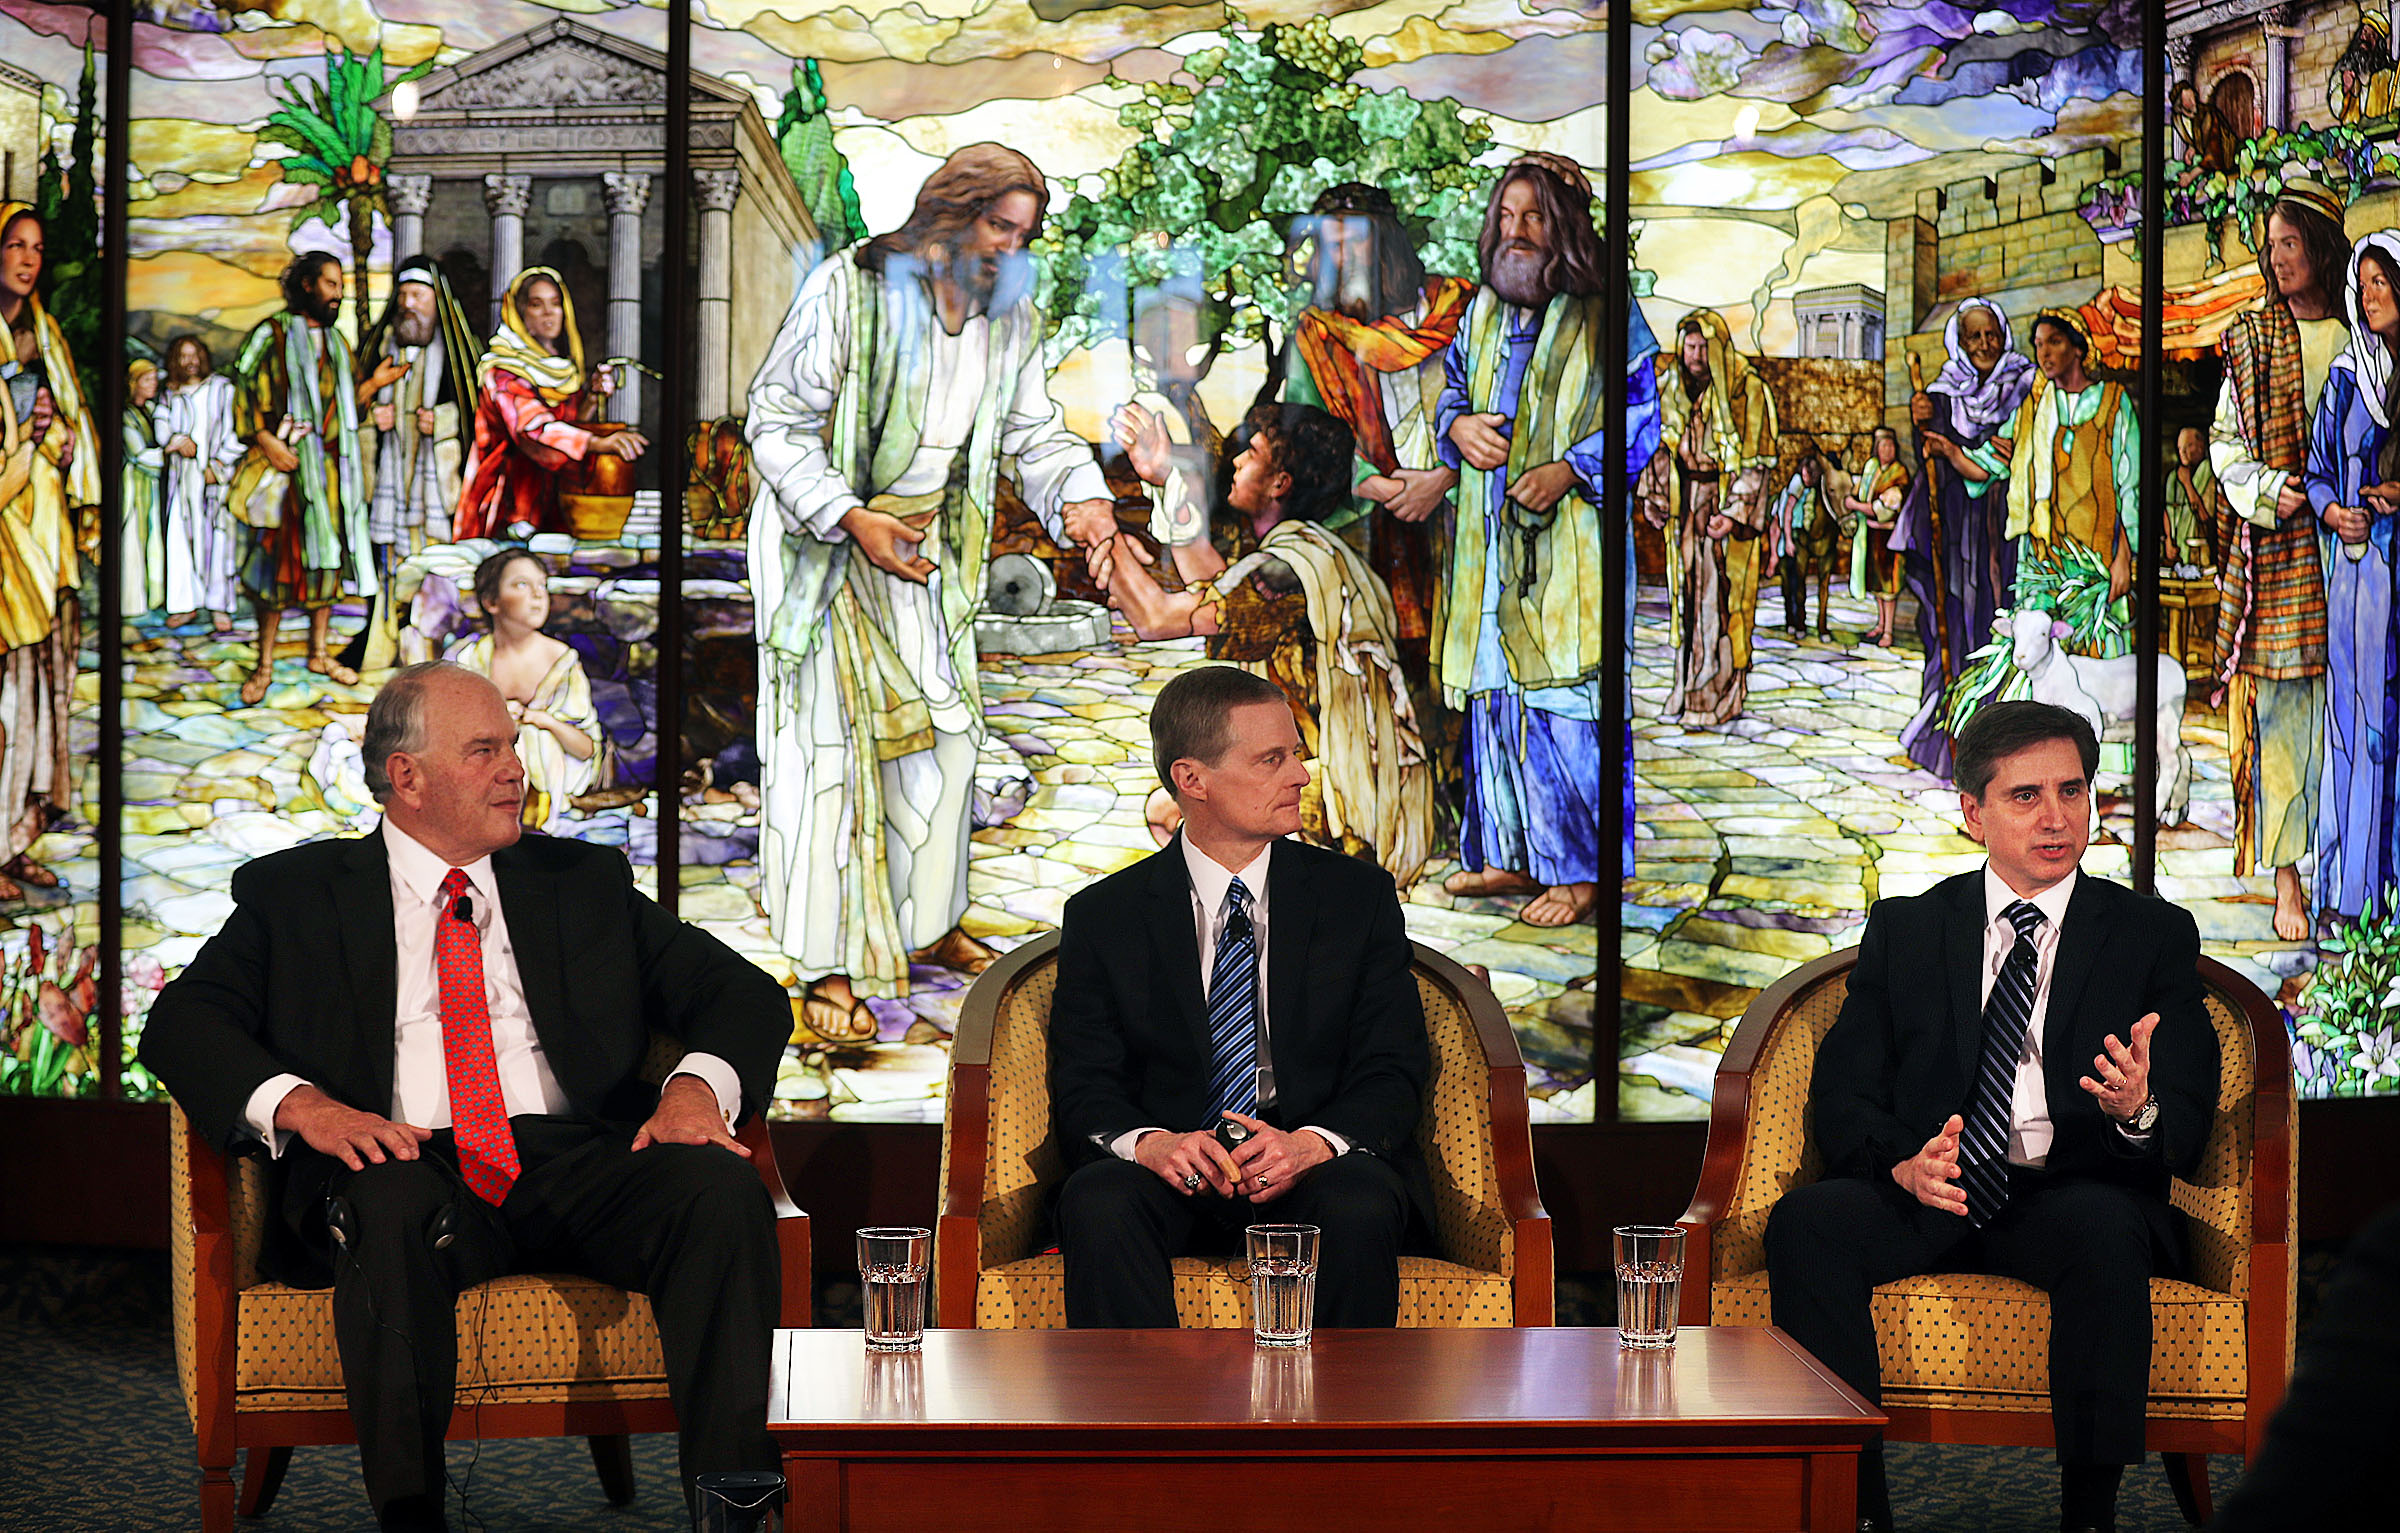 Elder Massimo De Feo, a General Authority Seventy and native of Italy, speaks during a news conference in the Rome Italy Temple Visitors' Center on Monday, Jan. 14, 2019. At left are Elder Ronald A. Rasband, left, and Elder David A. Bednar of the Quorum of the Twelve Apostles.